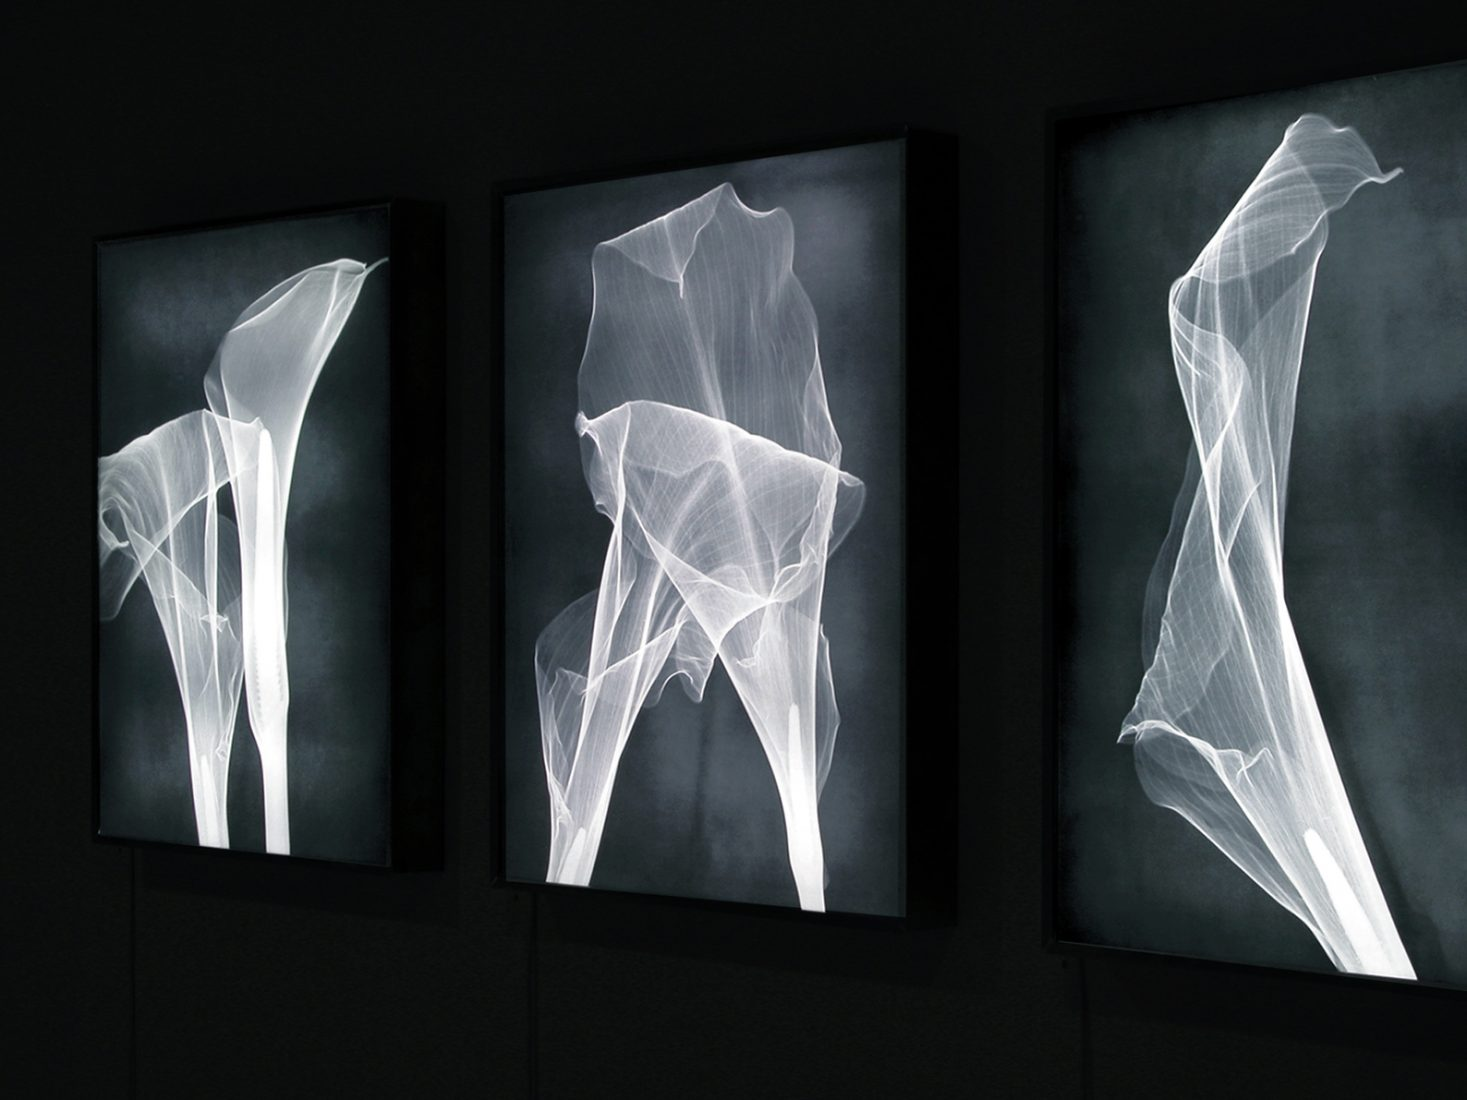 Grotesque & Arabesque, installation view with a series of light boxes: lambda duratrans, x-rays of callas, dimensions variable